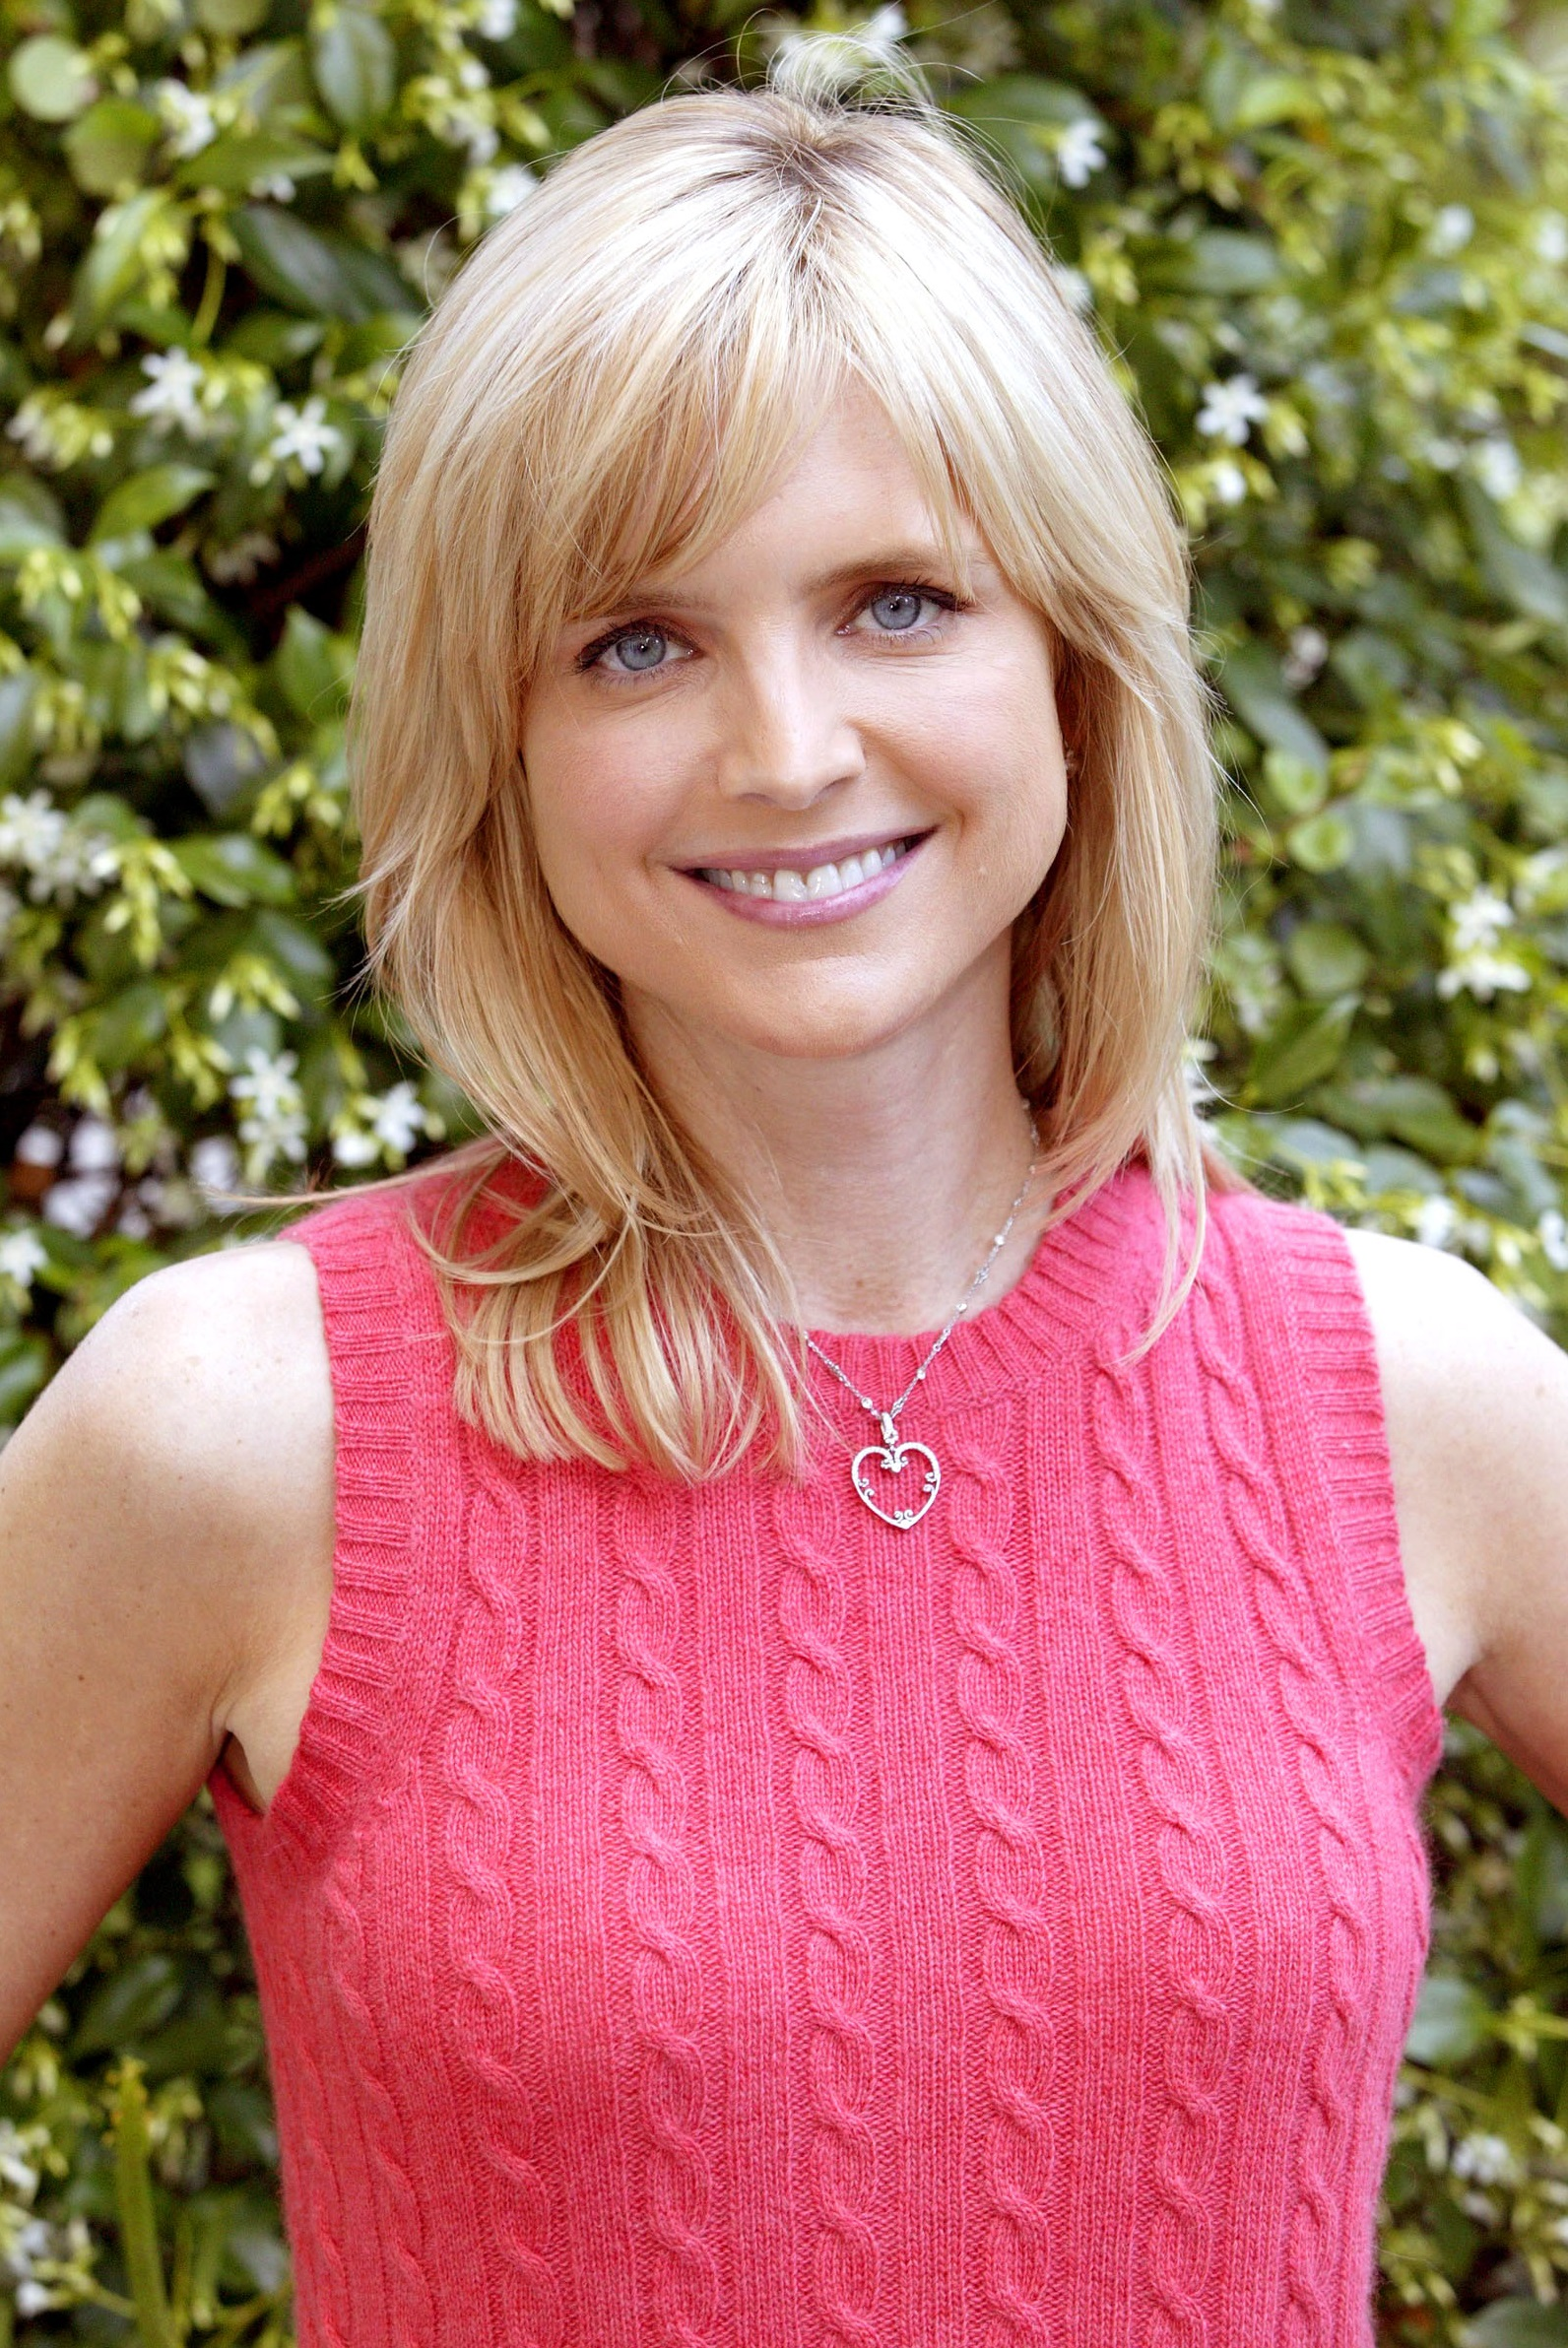 Nude pictures of courtney thorne smith